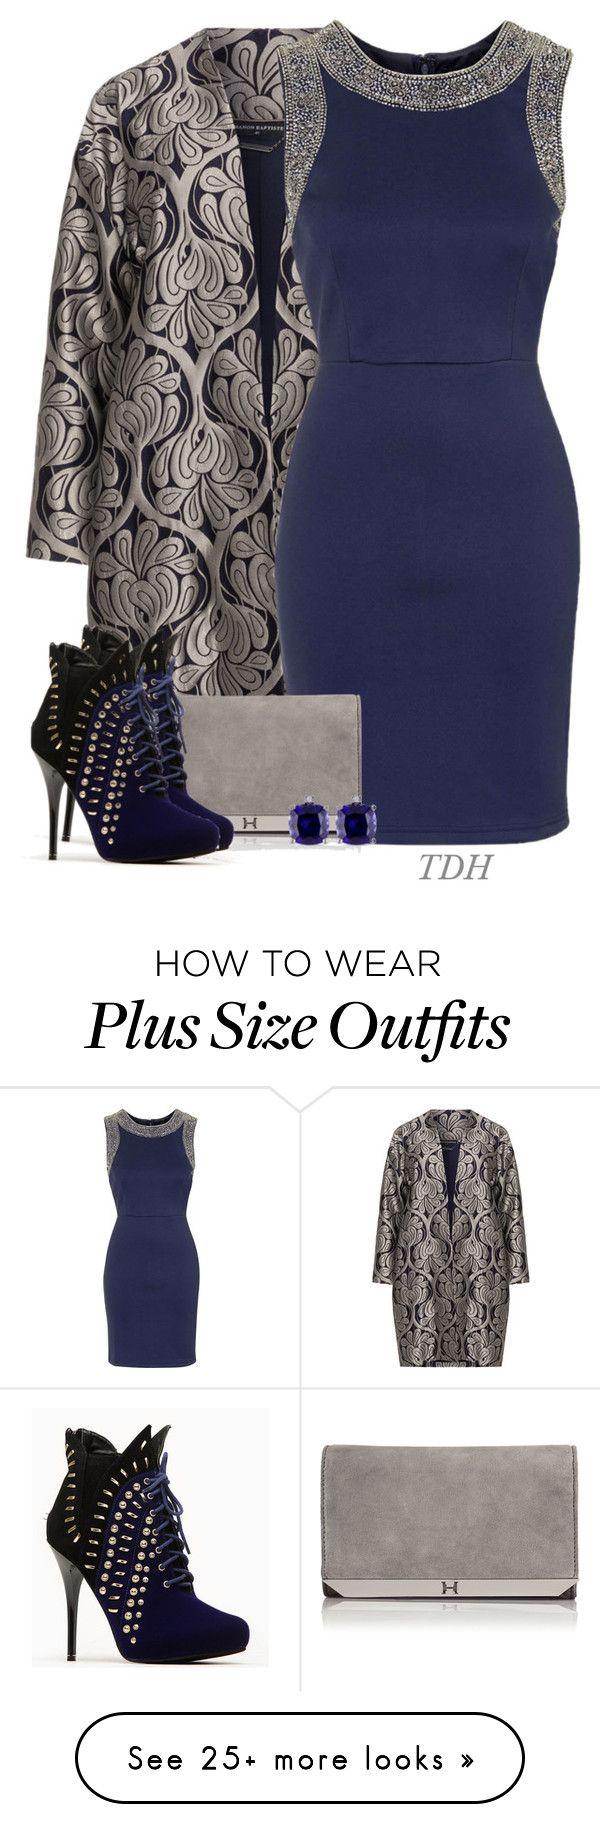 """Blue & Silver"" by talvadh on Polyvore featuring Manon Baptiste, TFNC, Halston Heritage and Miadora"